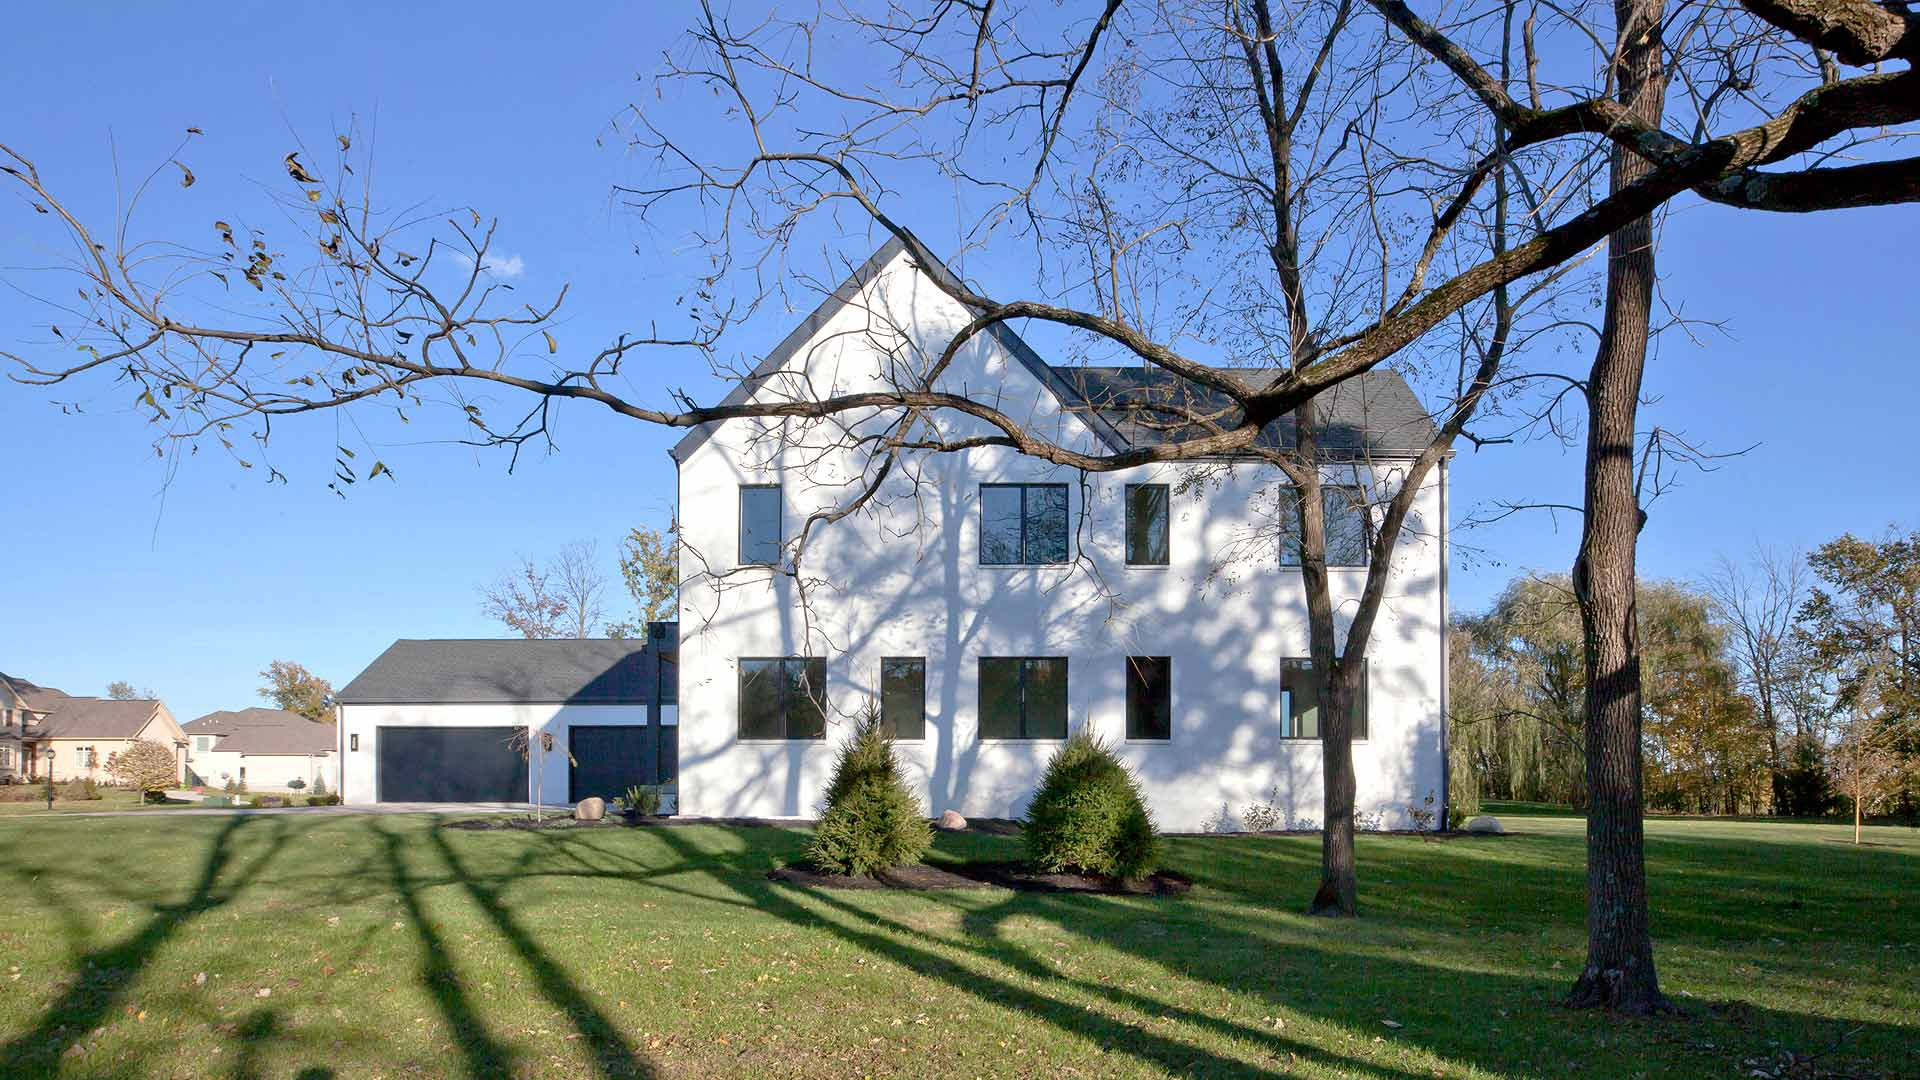 West Exterior Elevation - Modern Colonial House - Towne Oak Estates, Steffe Drive, Carmel, Indiana - Christopher Short, Derek Mills - Indianapolis Architects, HAUS | Architecture For Modern Lifestyles